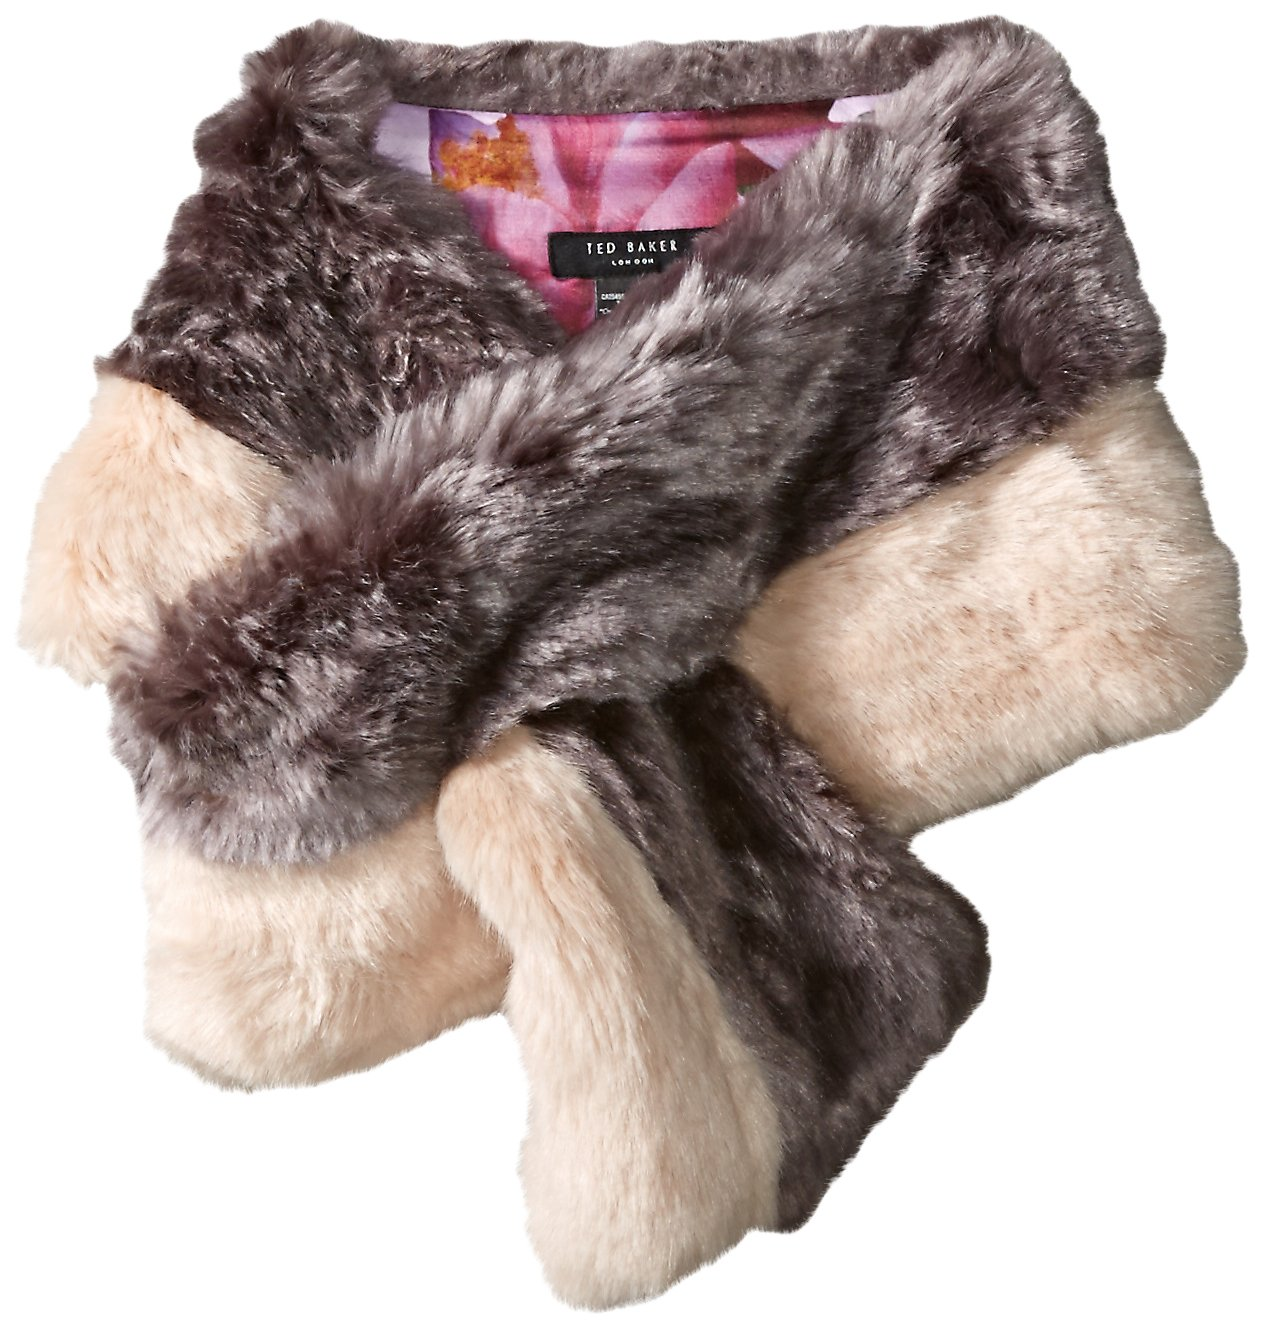 Ted Baker London Women's Wyn Double Stripe Detail Faux Fur Scarf, Mid Purple, One Size